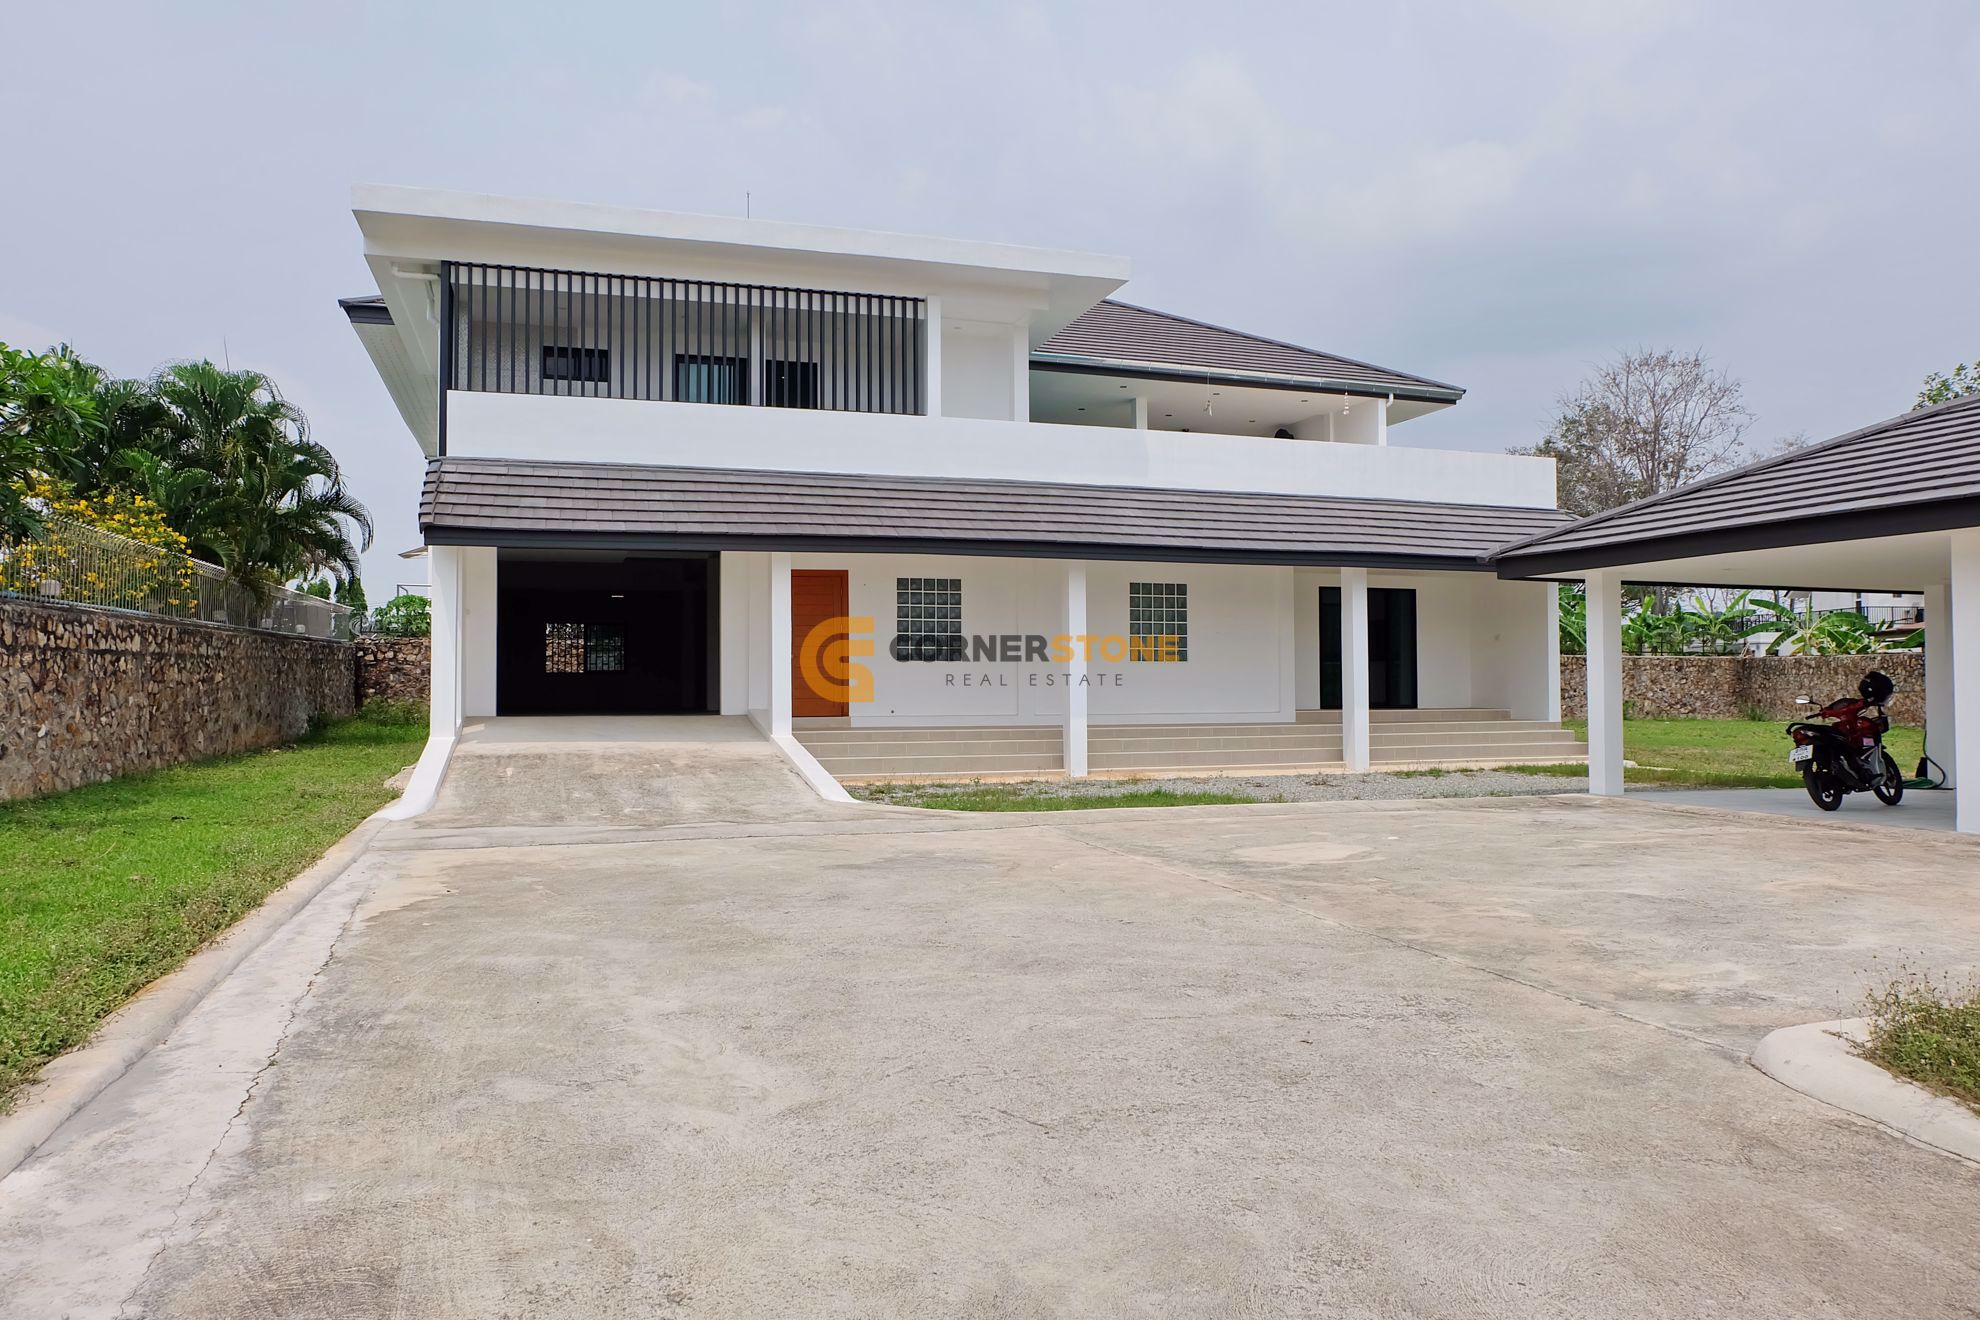 4 bed House in East Pattaya H002243